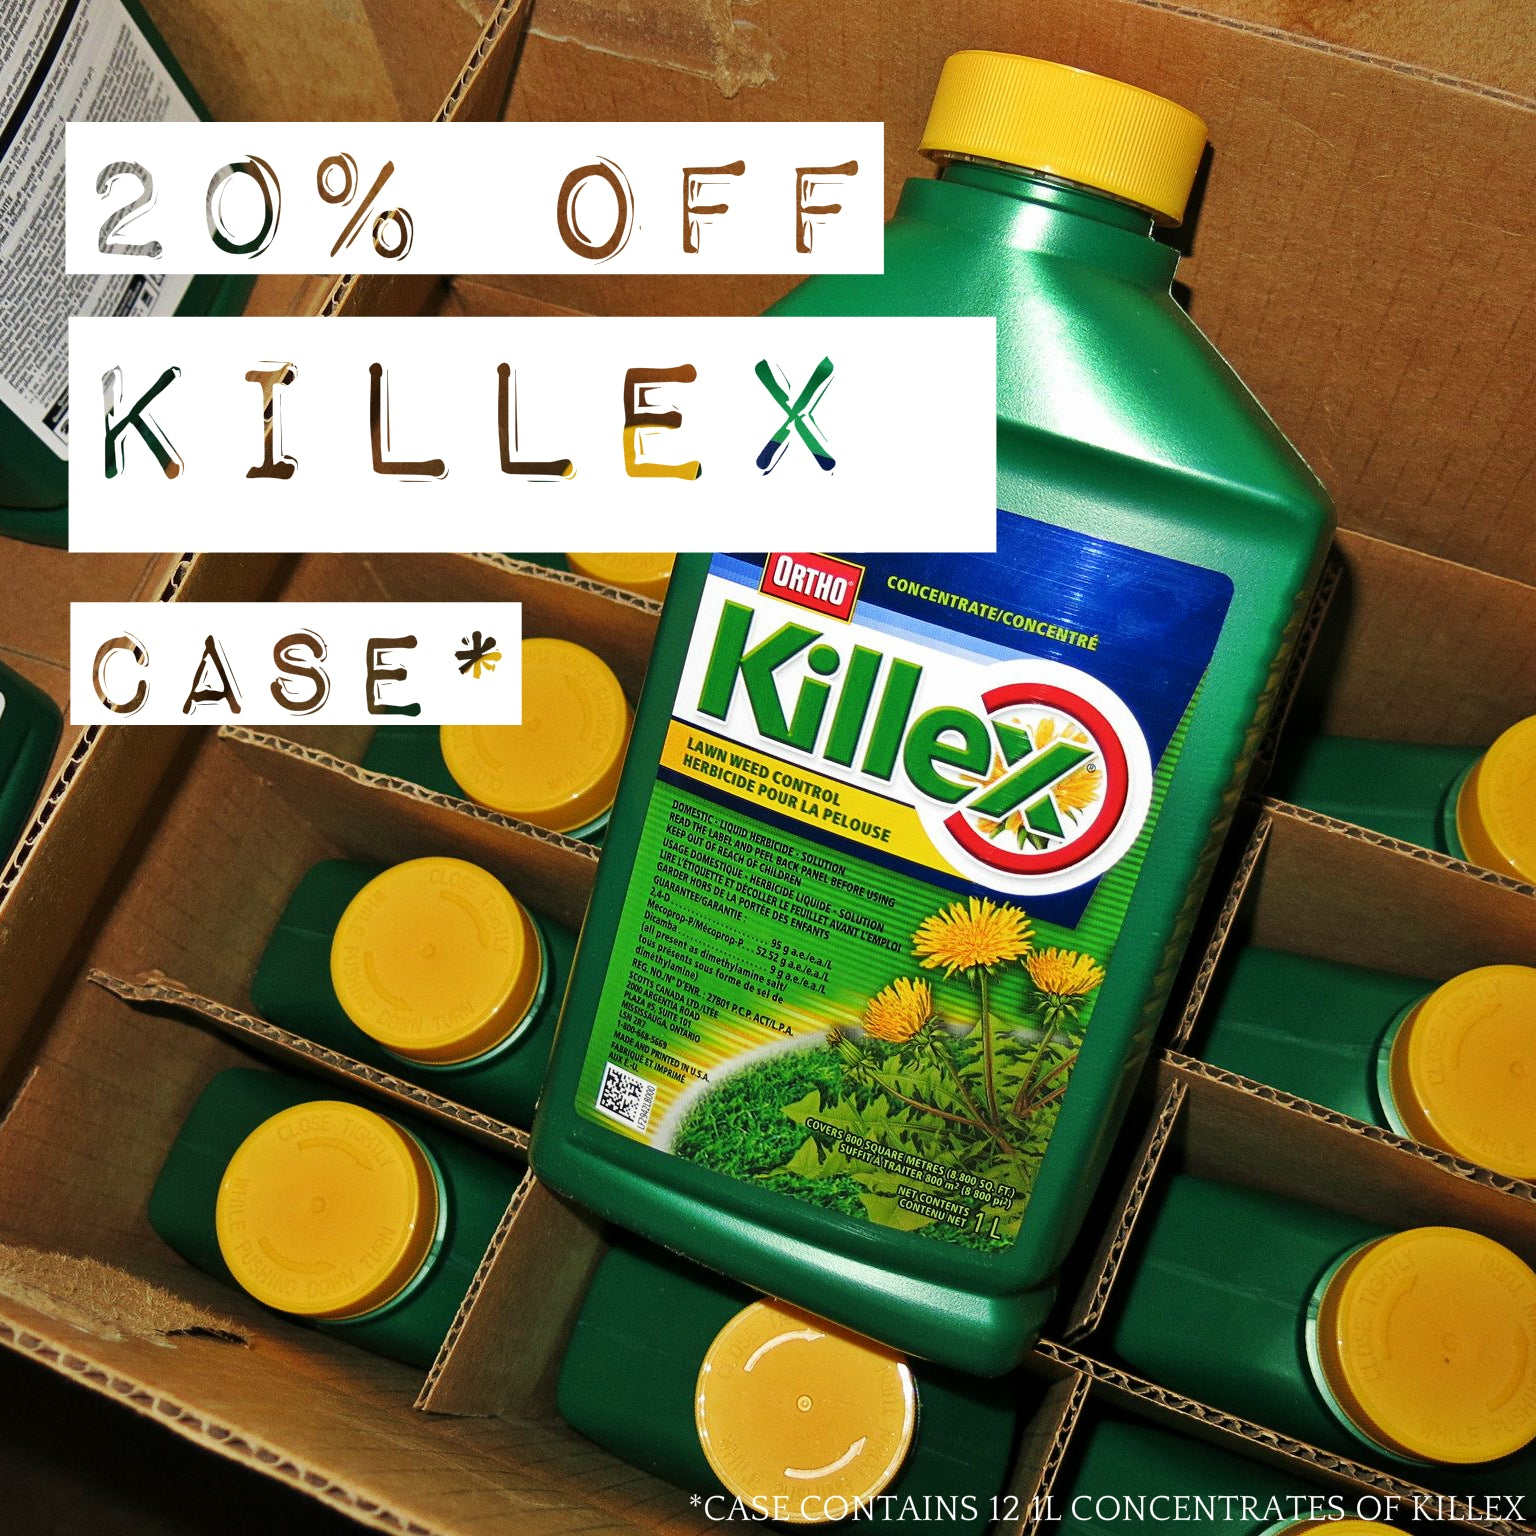 Buy Killex, WeedOut, 2,4-D, GrubOut, Roundup, SEVIN in Canada